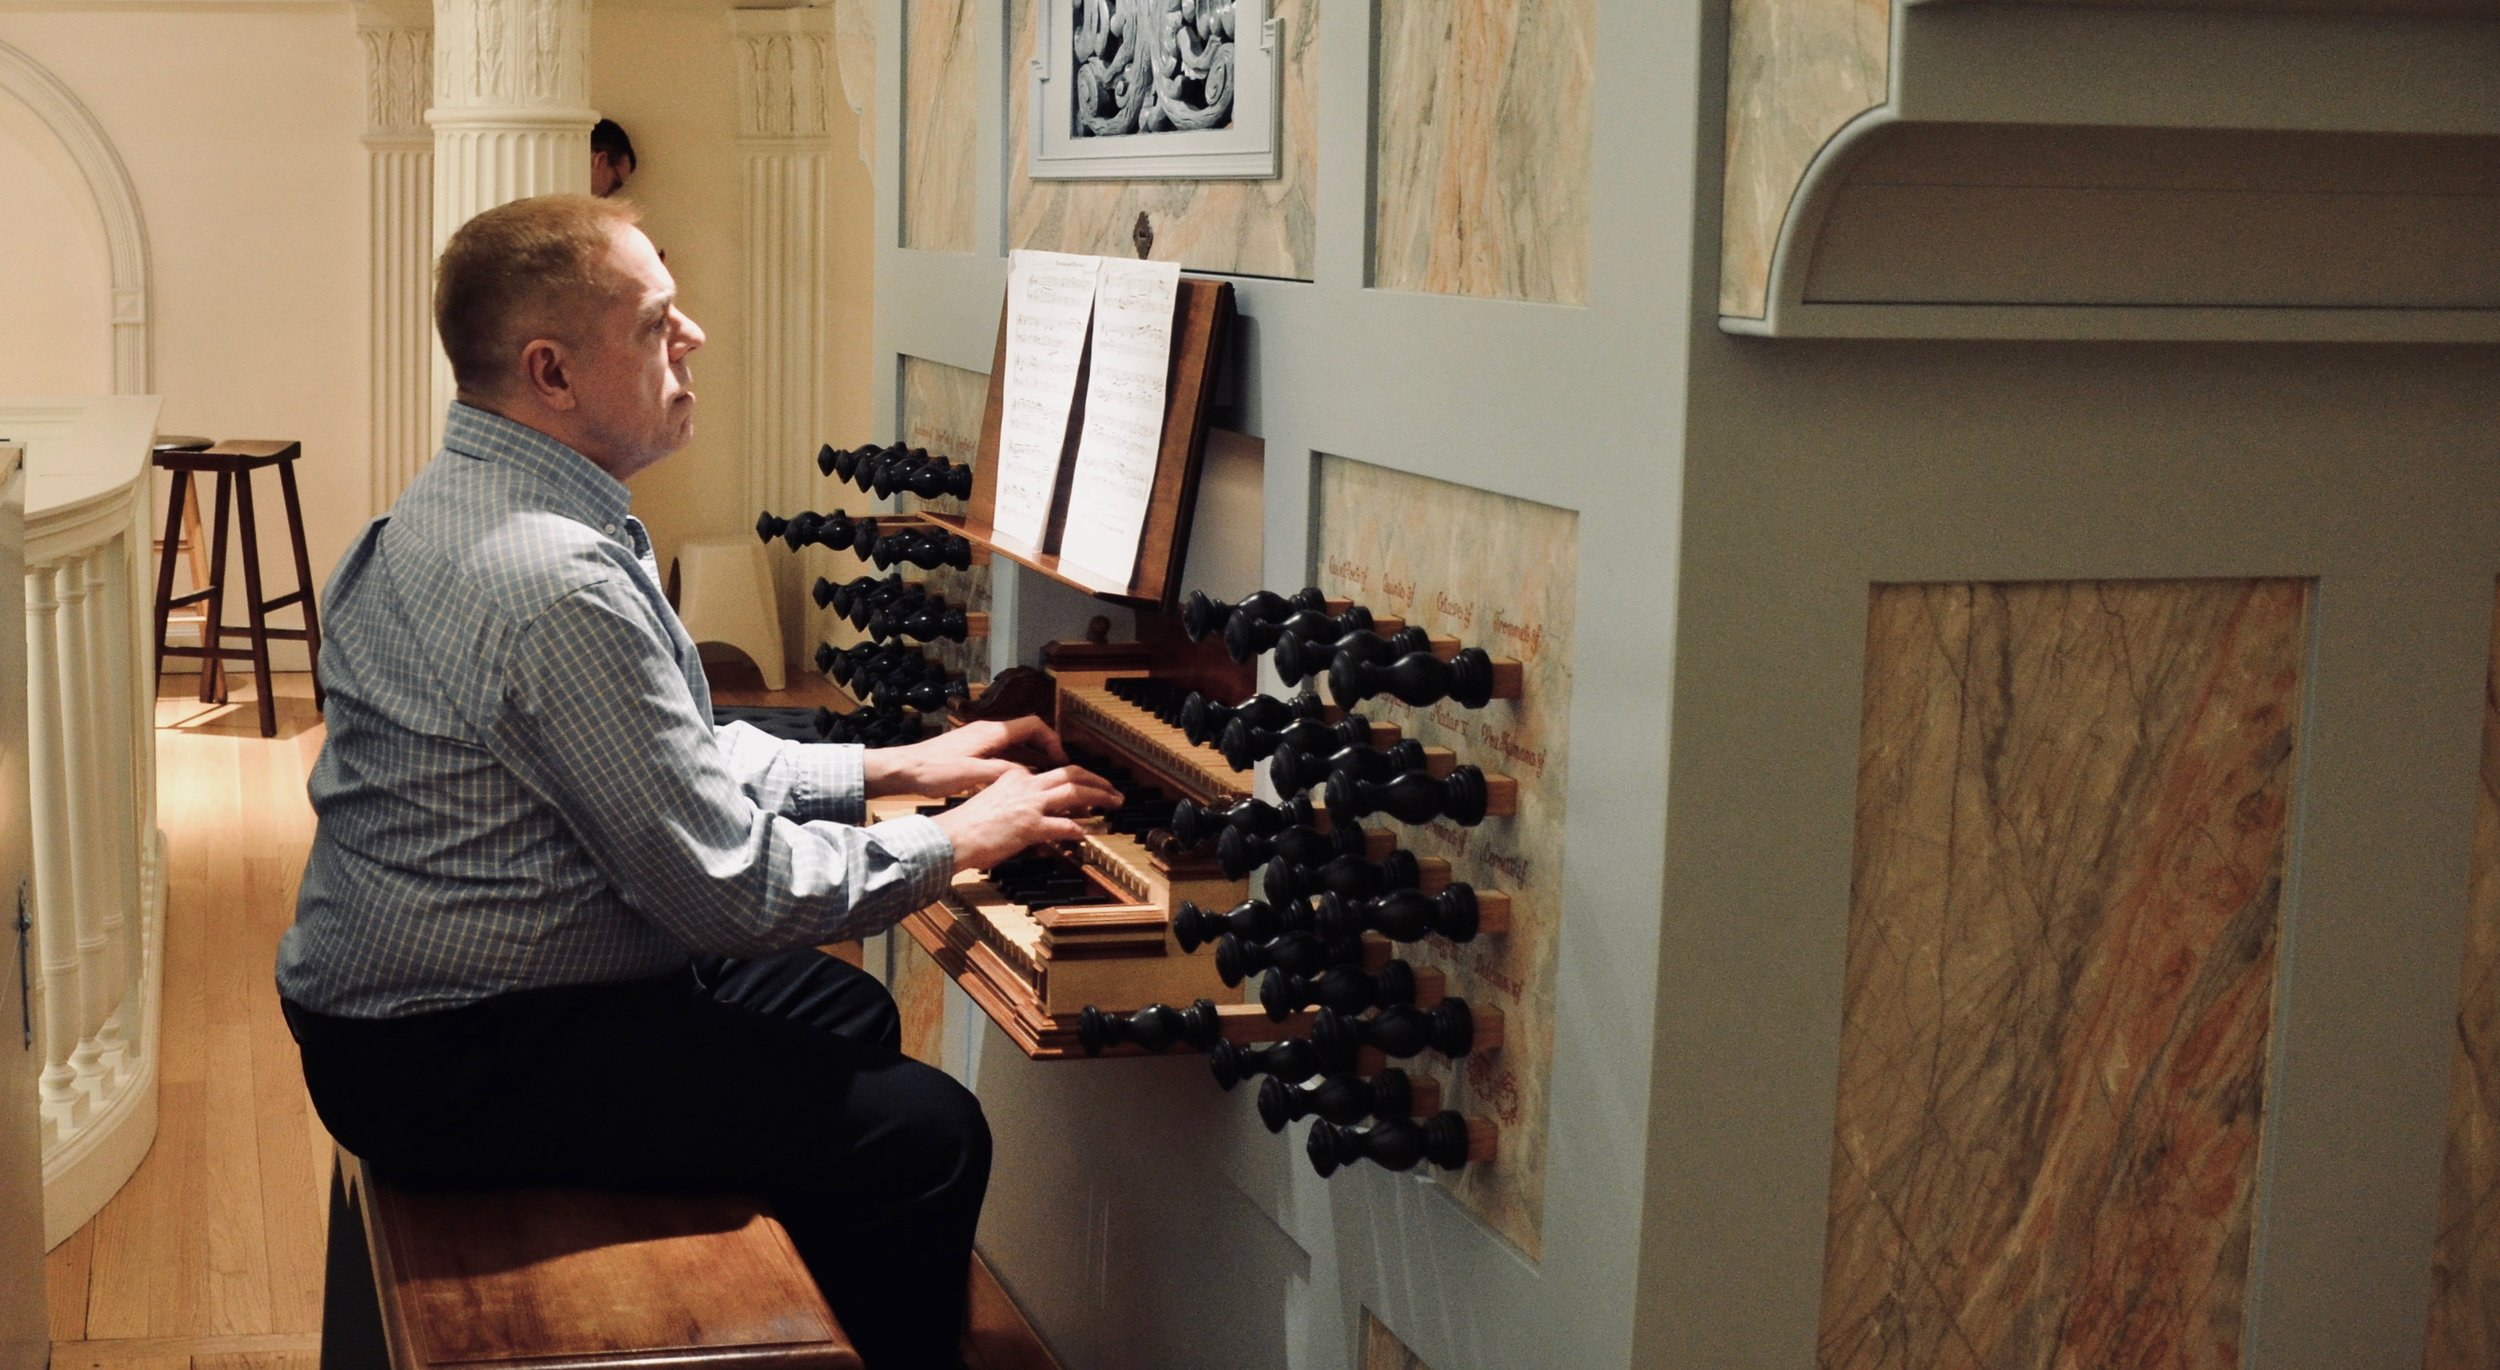 Joseph Srednicki plays Frescobaldi in Marquand Chapel, Yale University.